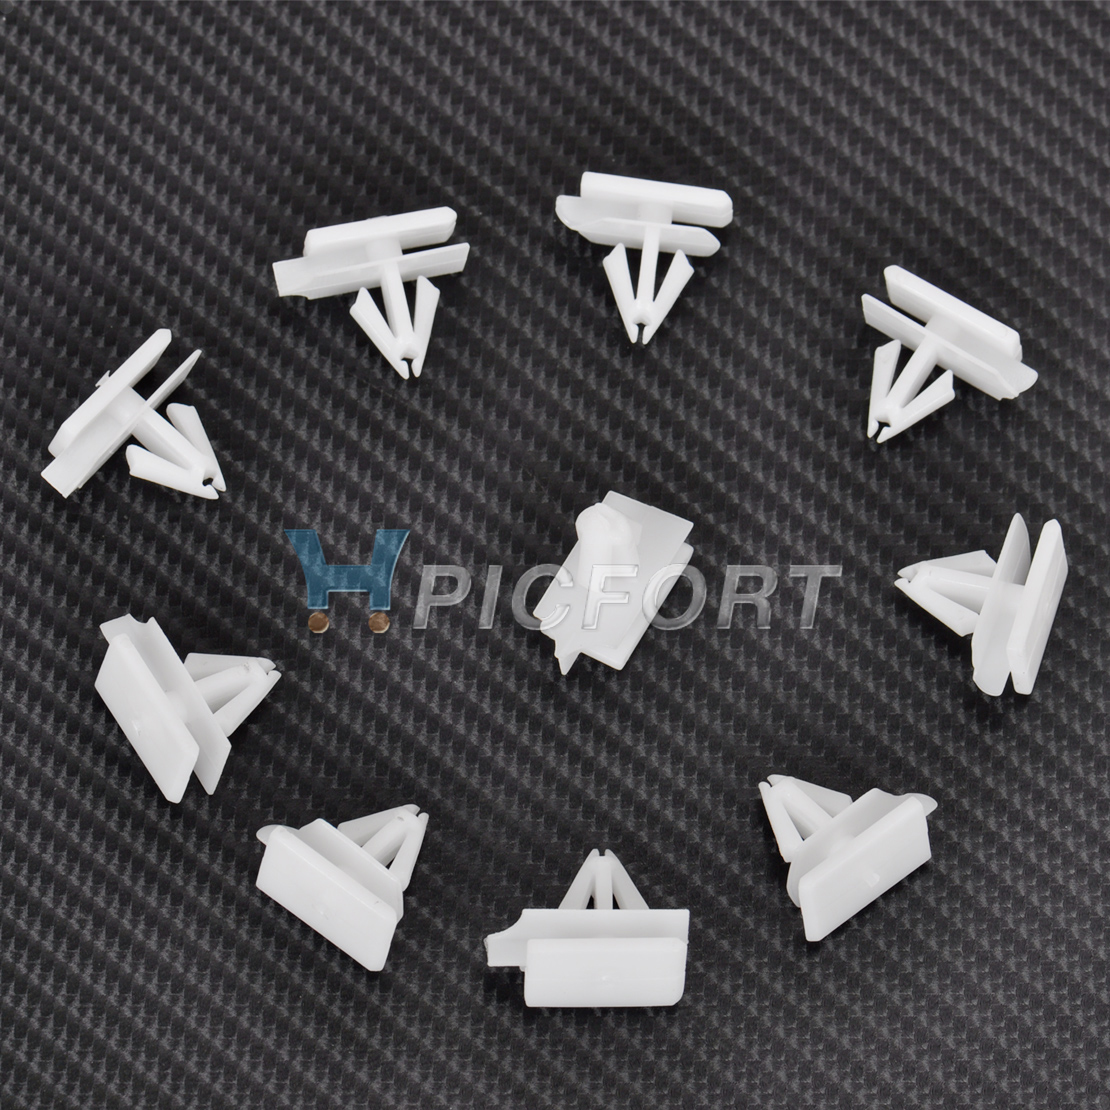 10Pcs Fastener Fender Rocker Panel Moulding Clips For Pontiac